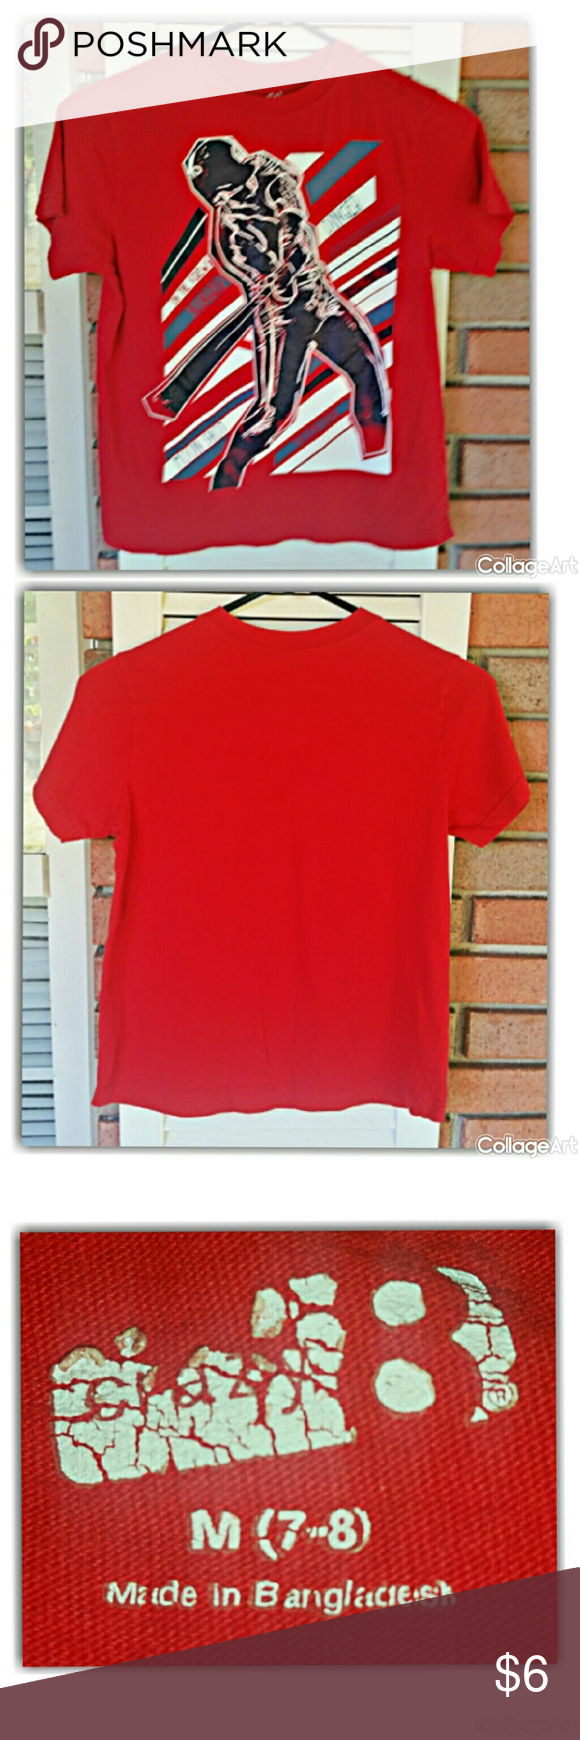 Red baseball t shirt by Crazy 8 100% cotton. Turn inside out, machine wash cold, tumble dry low.#crazy8boys#sizem7-8 Crazy 8 Shirts & Tops Tees - Short Sleeve